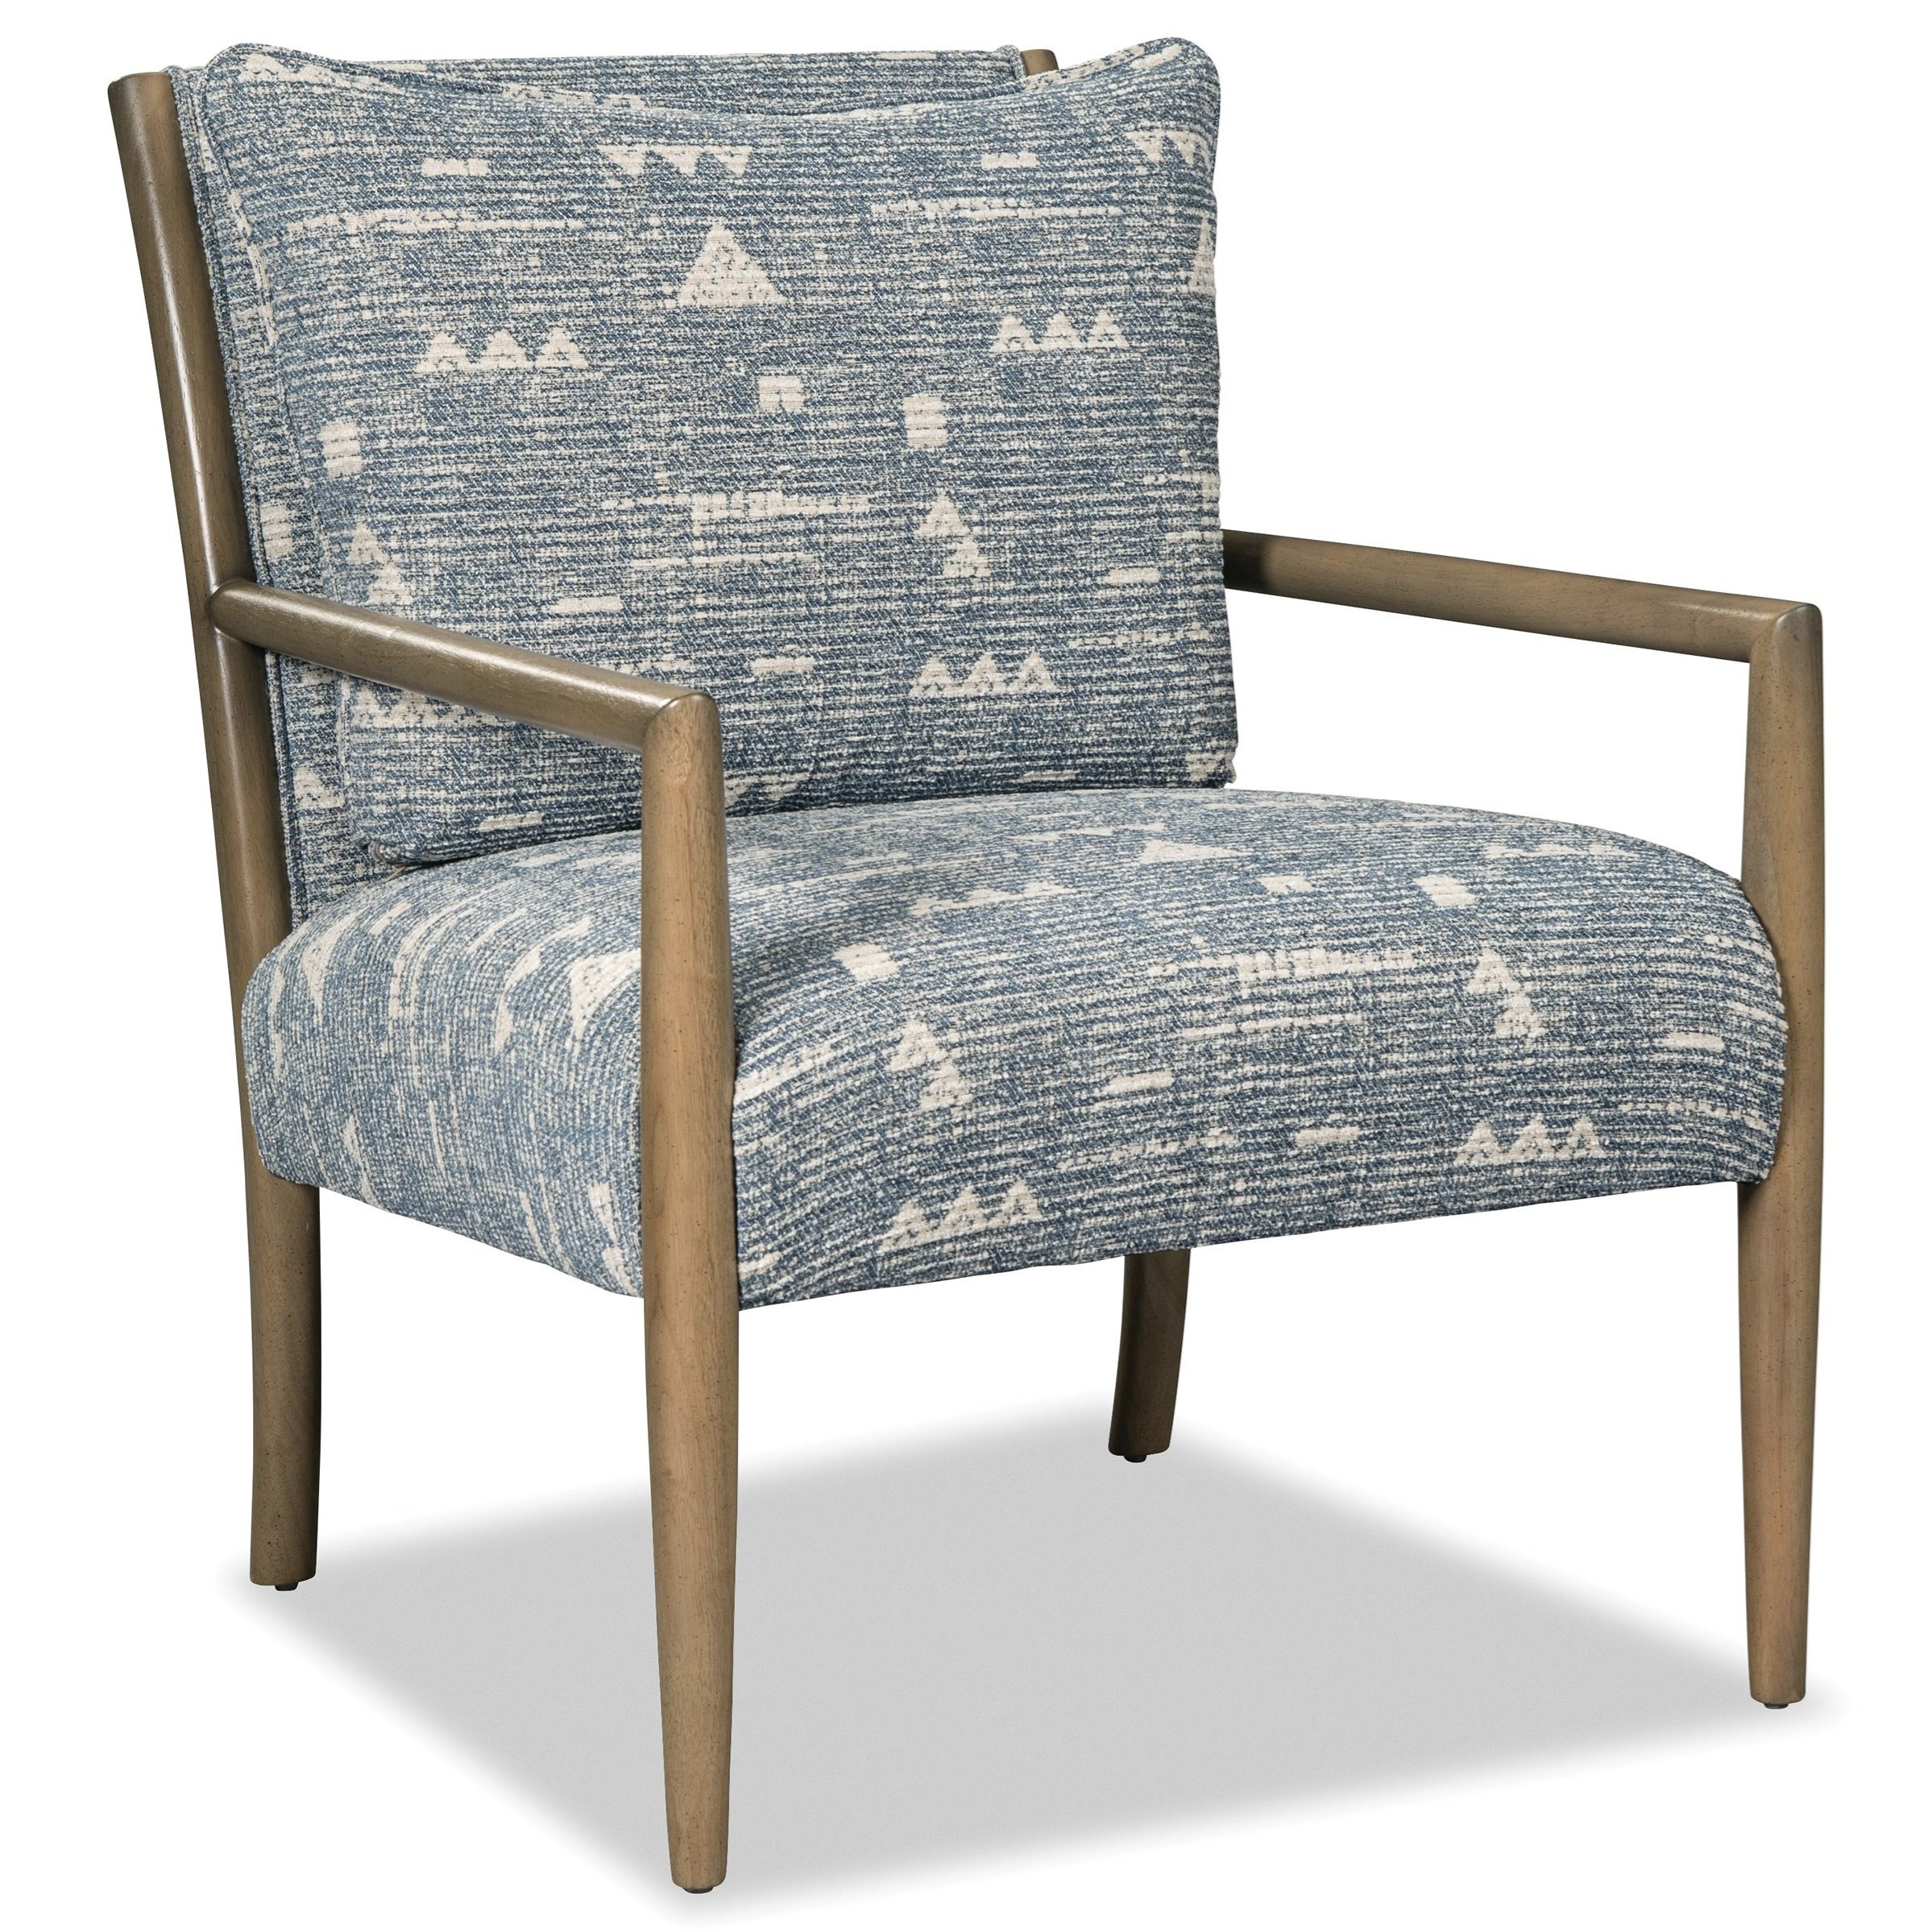 082210 Accent Chair by Craftmaster at Prime Brothers Furniture